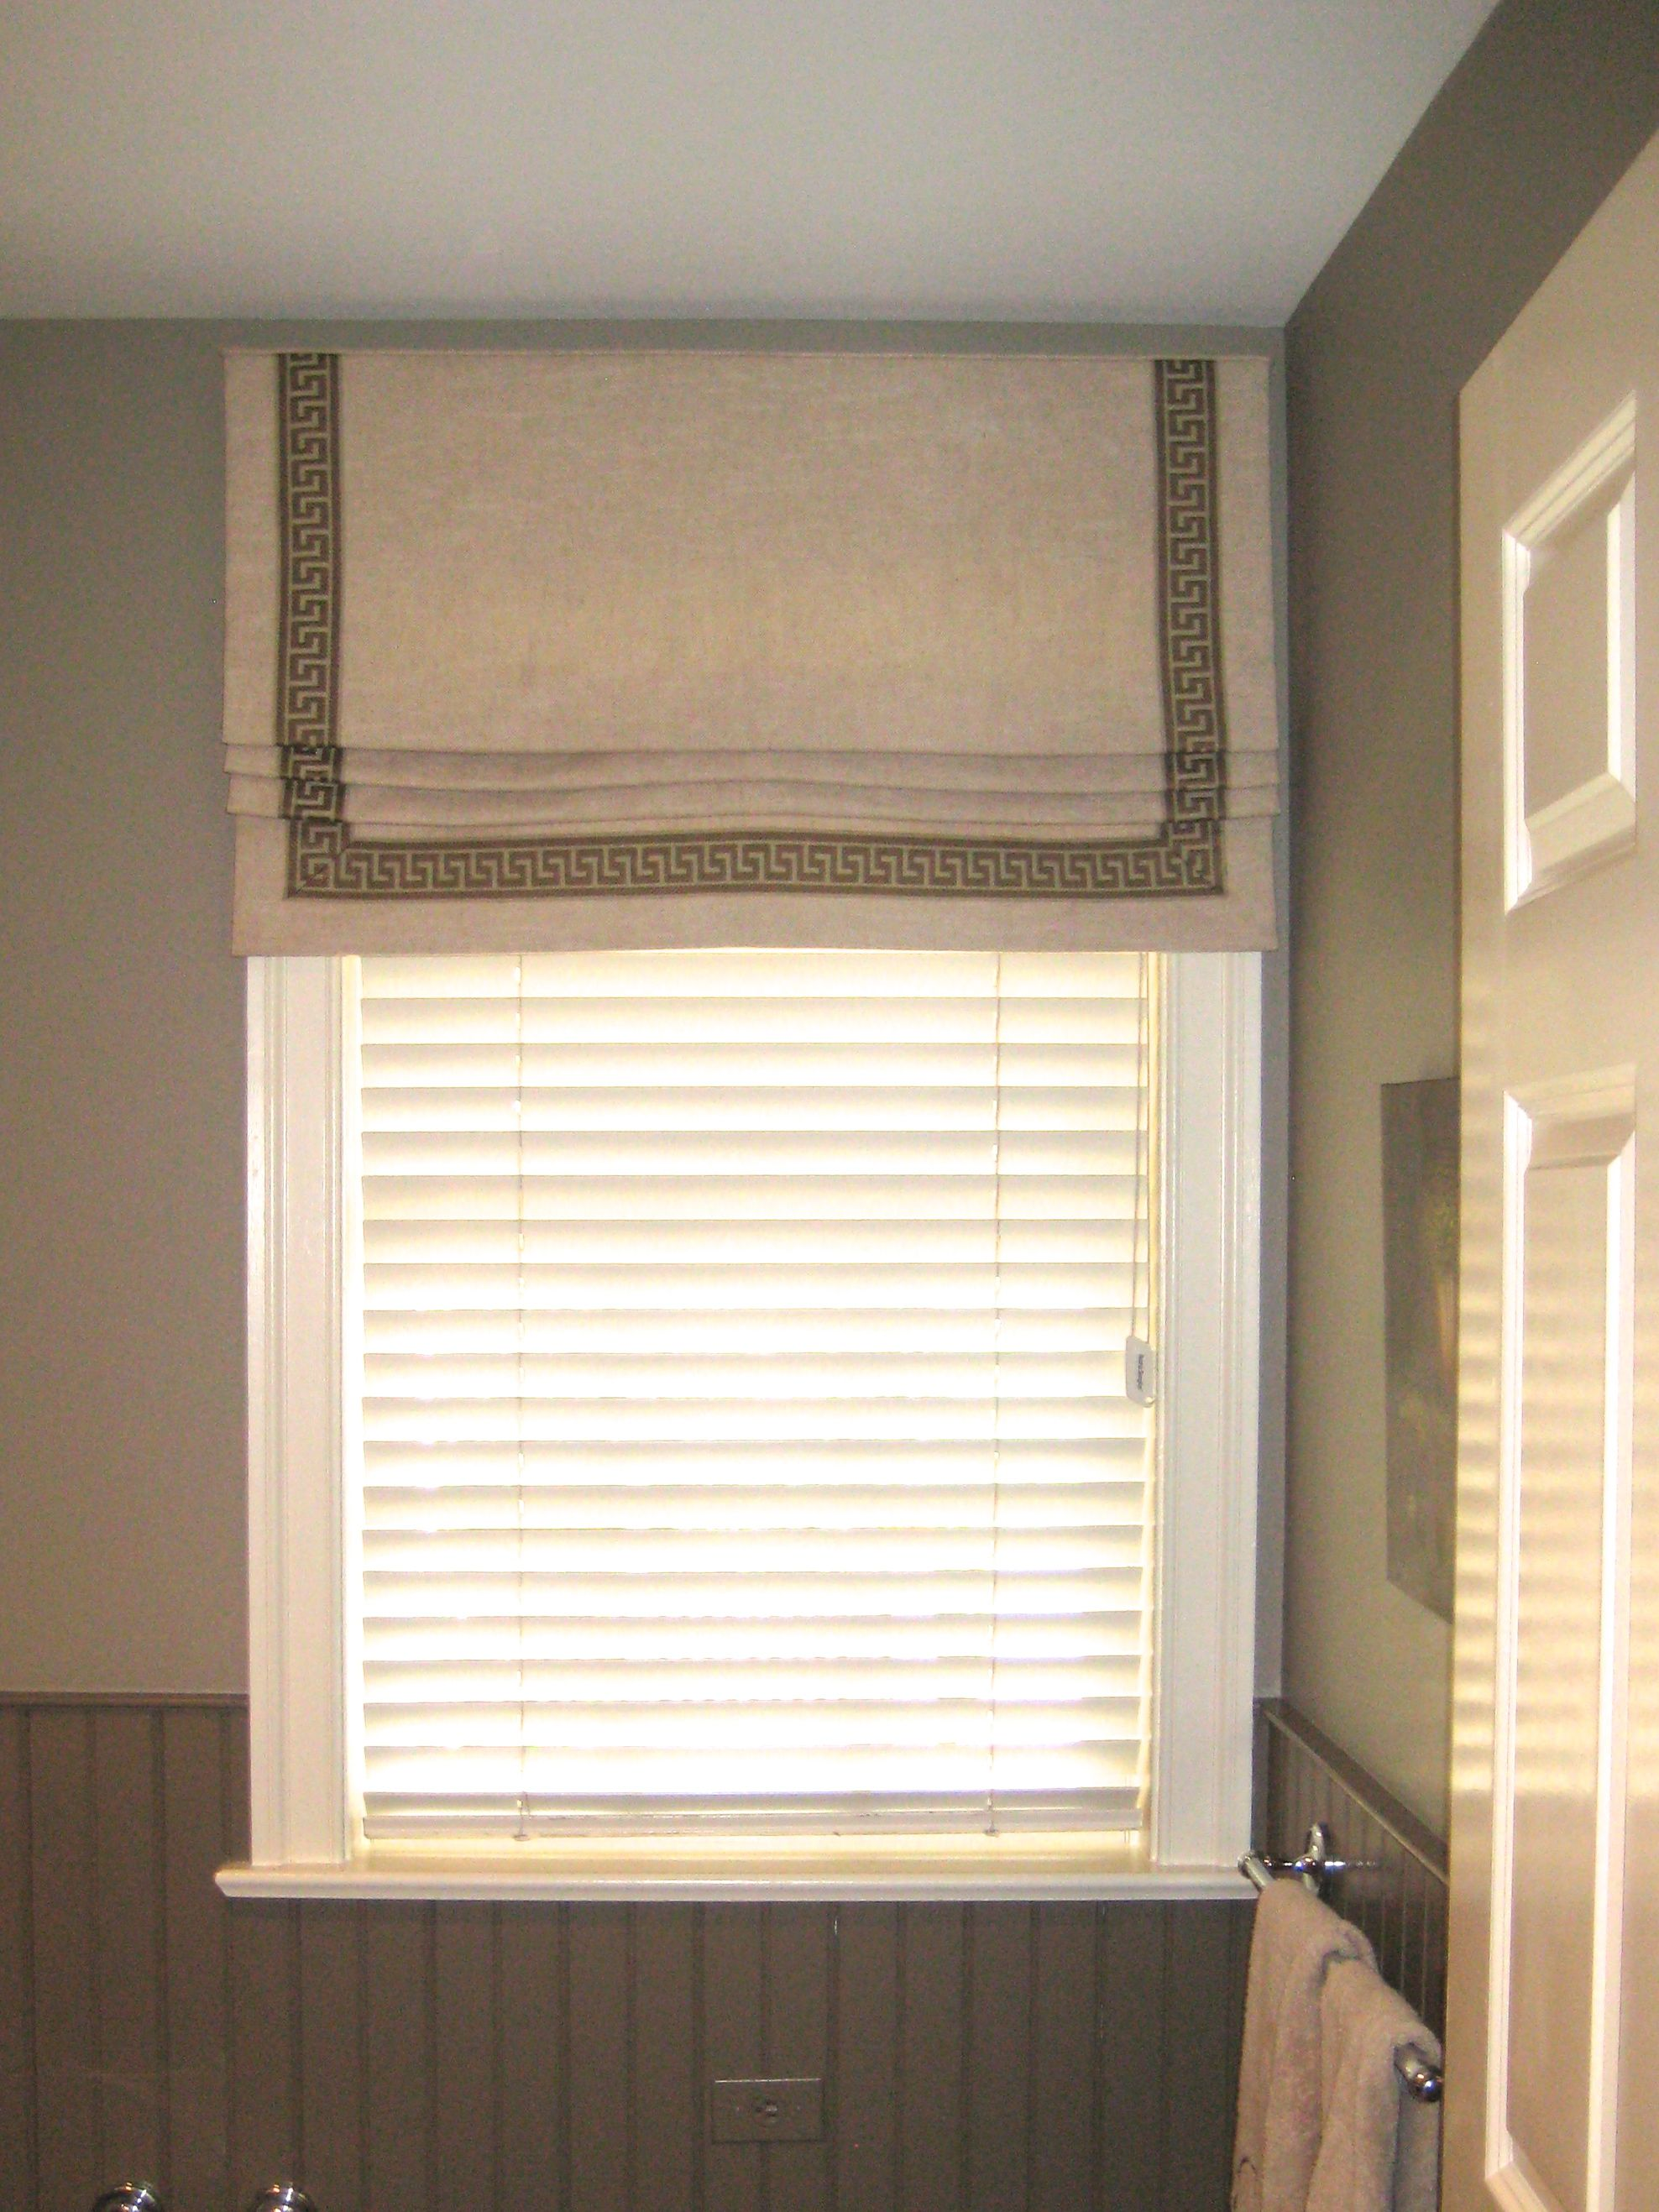 Tape Trim Adds An Elegant Border To This Roman Shade